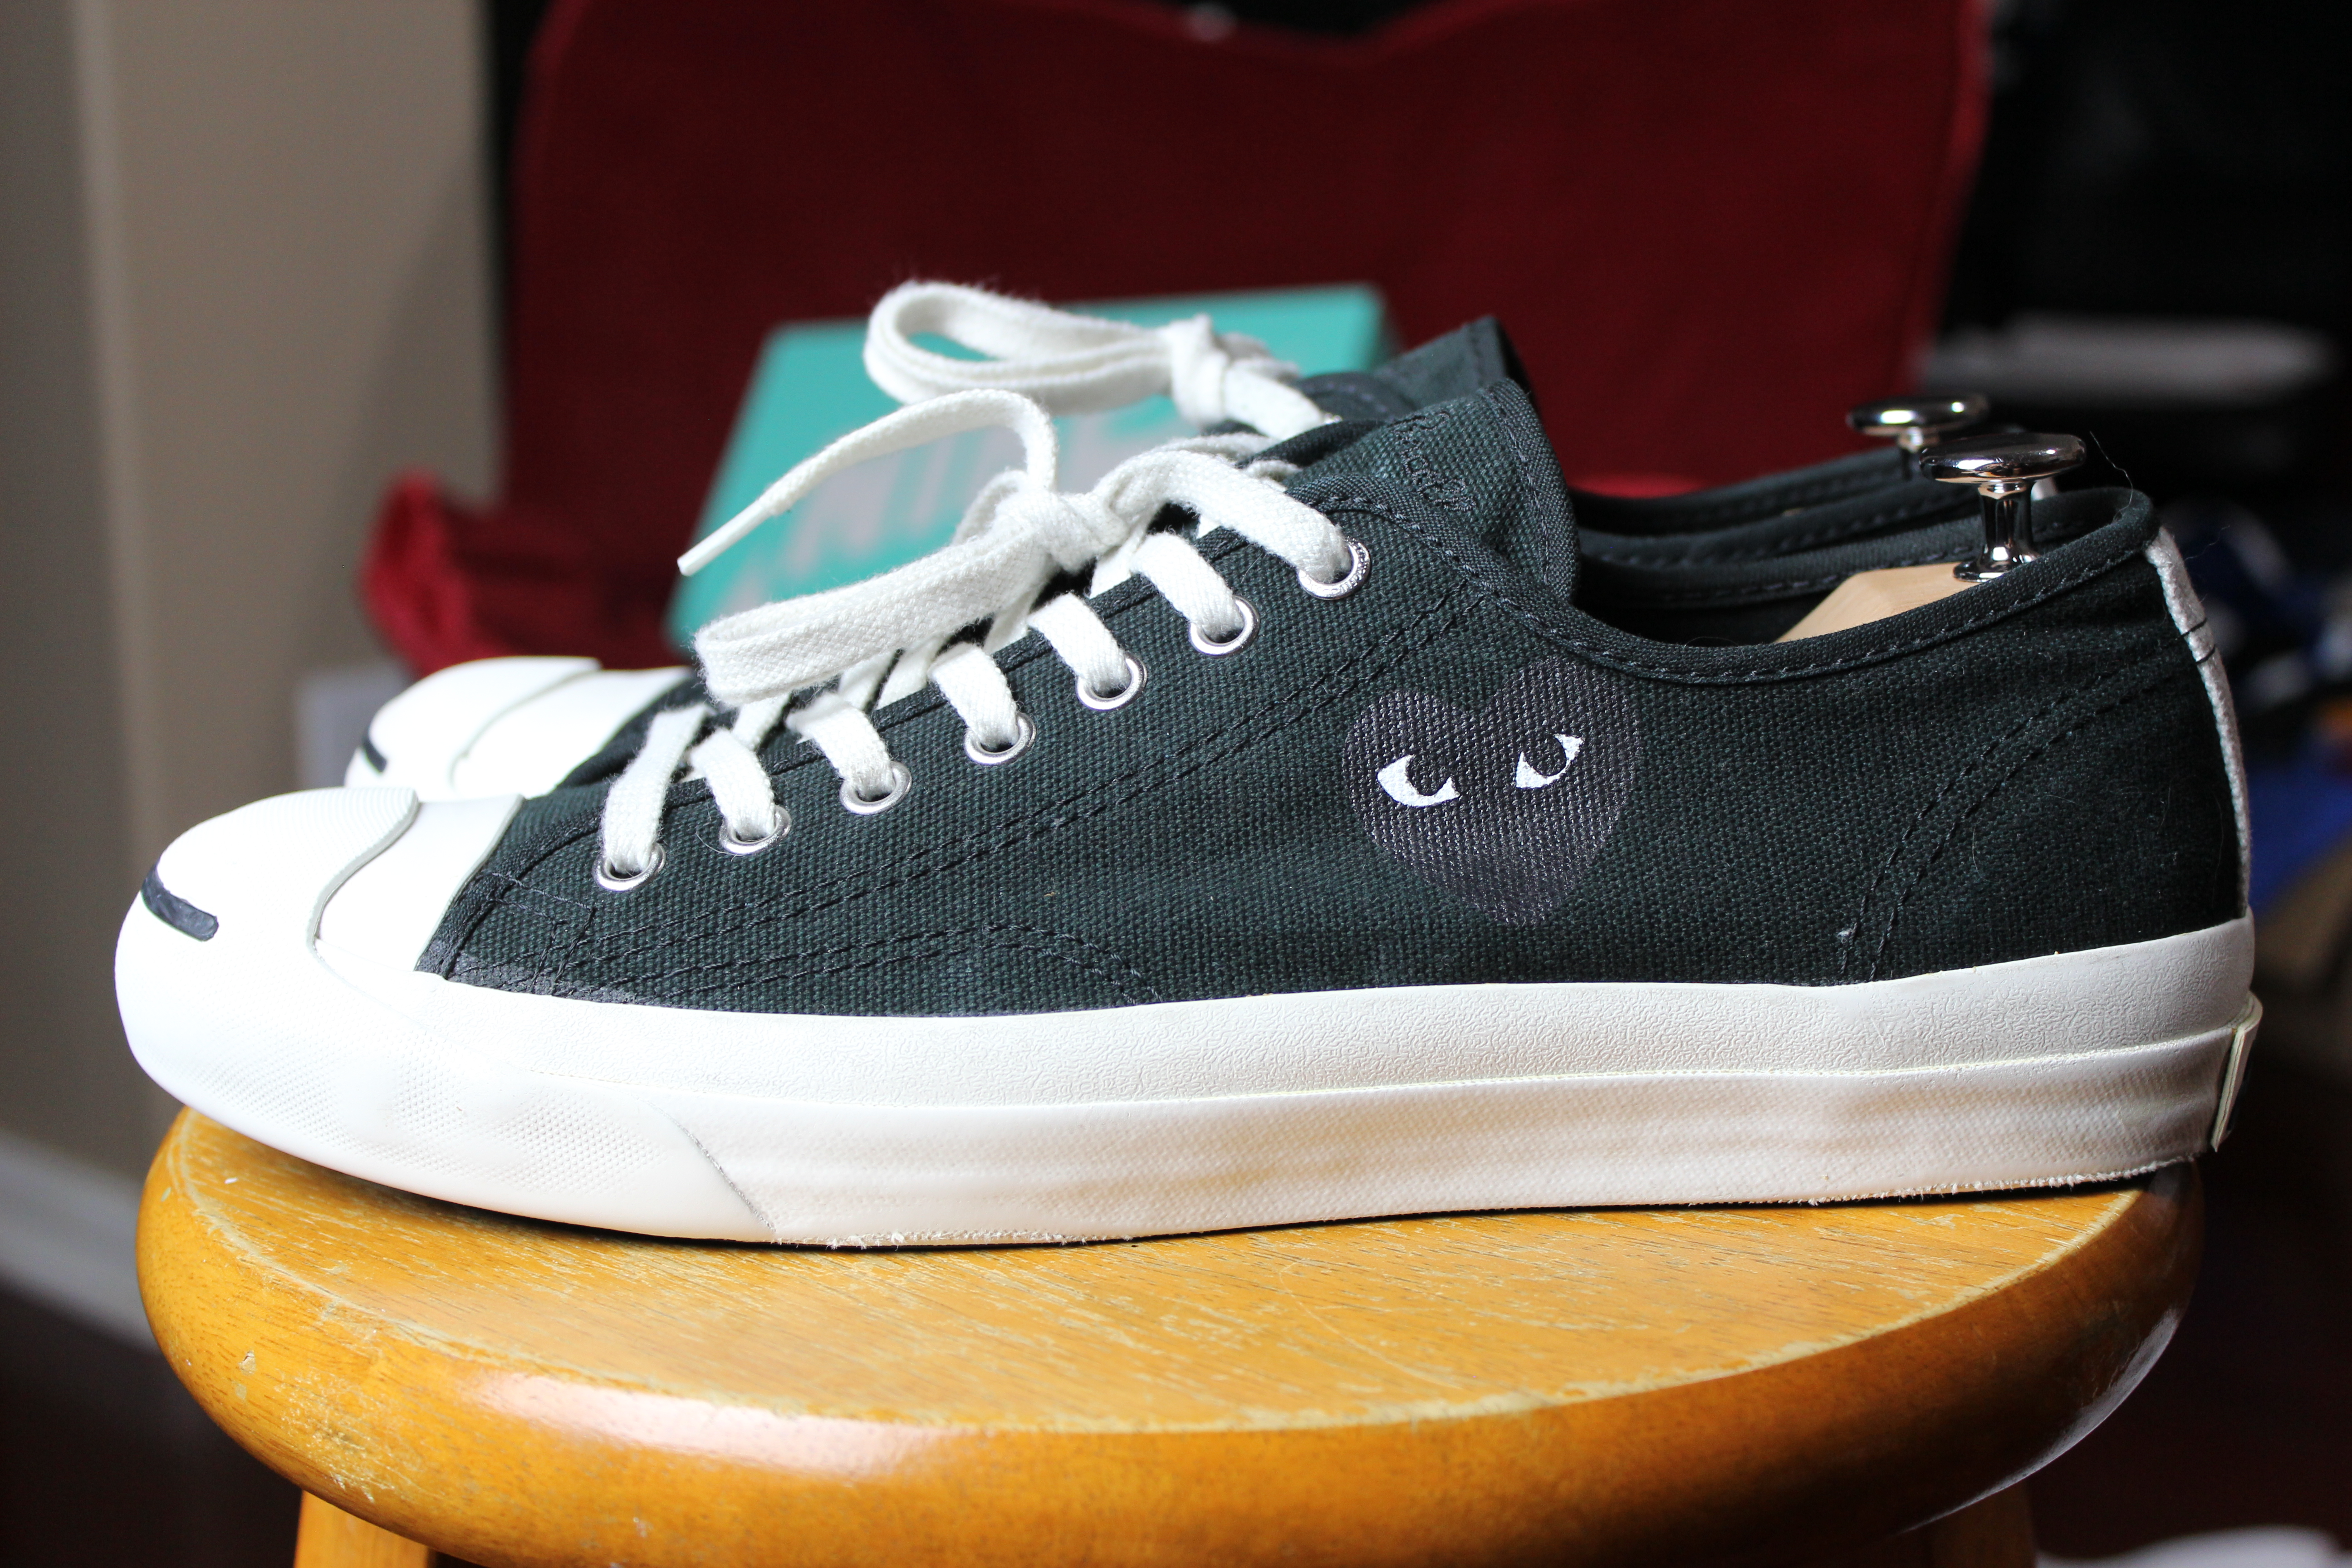 484daaa5c6a Jack Purcell Black Low Top Little Heart OG 1.0 Rare CDG